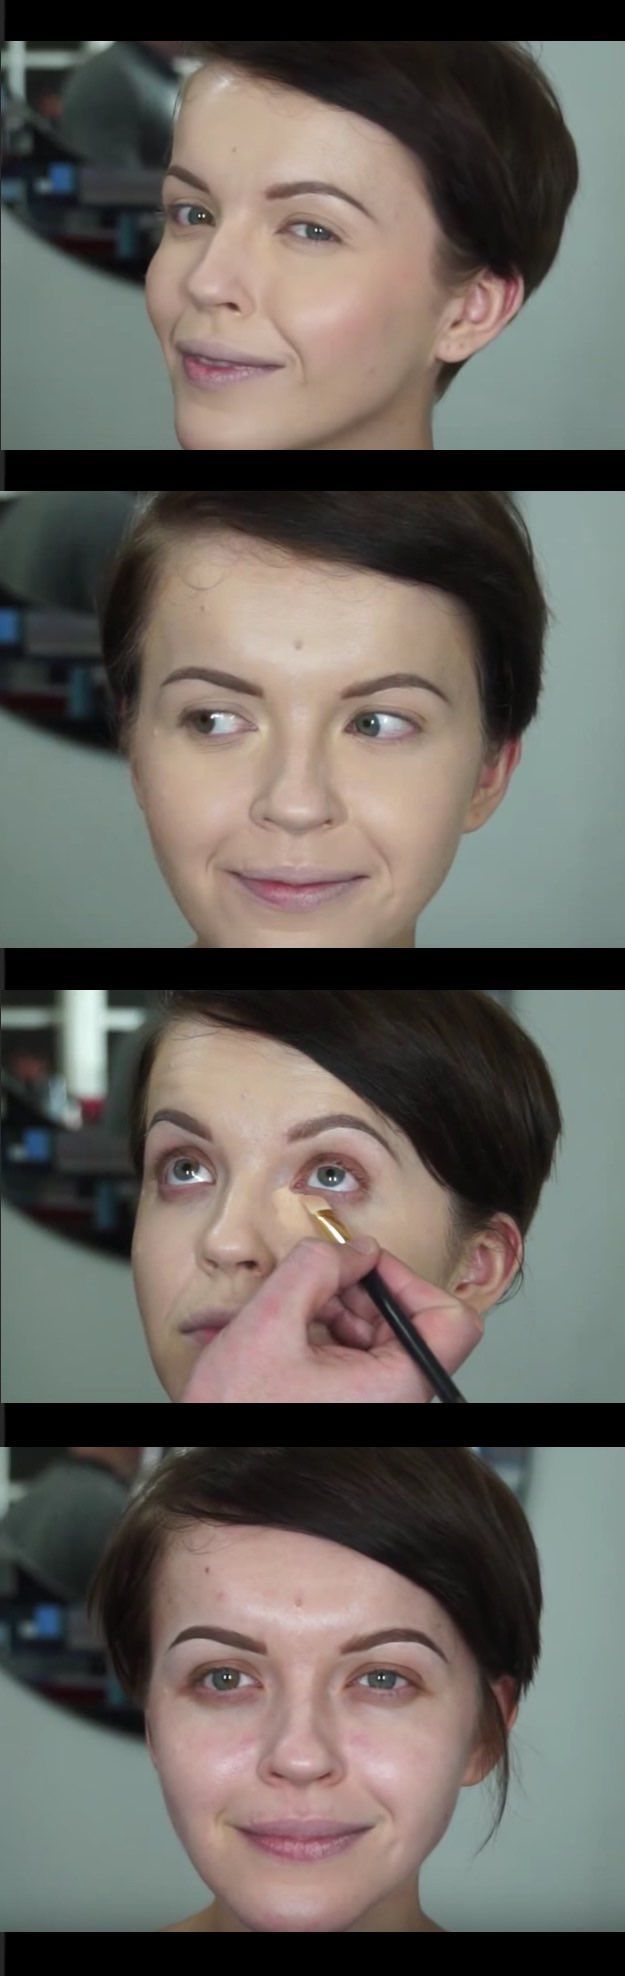 33 Makeup Tips and Tricks To Make You Look Less Tired - Cover Extreme Under Eye Darkness and Getting Flawless Skin- Eye Bags and Oily Skin? Check Out These Makeup Tips and Tricks to Make You Look Less Tired. Great Tips, Beauty Products and How Tos for All Types of Faces - thegoddess.com/makeup-tips-look-less-tired